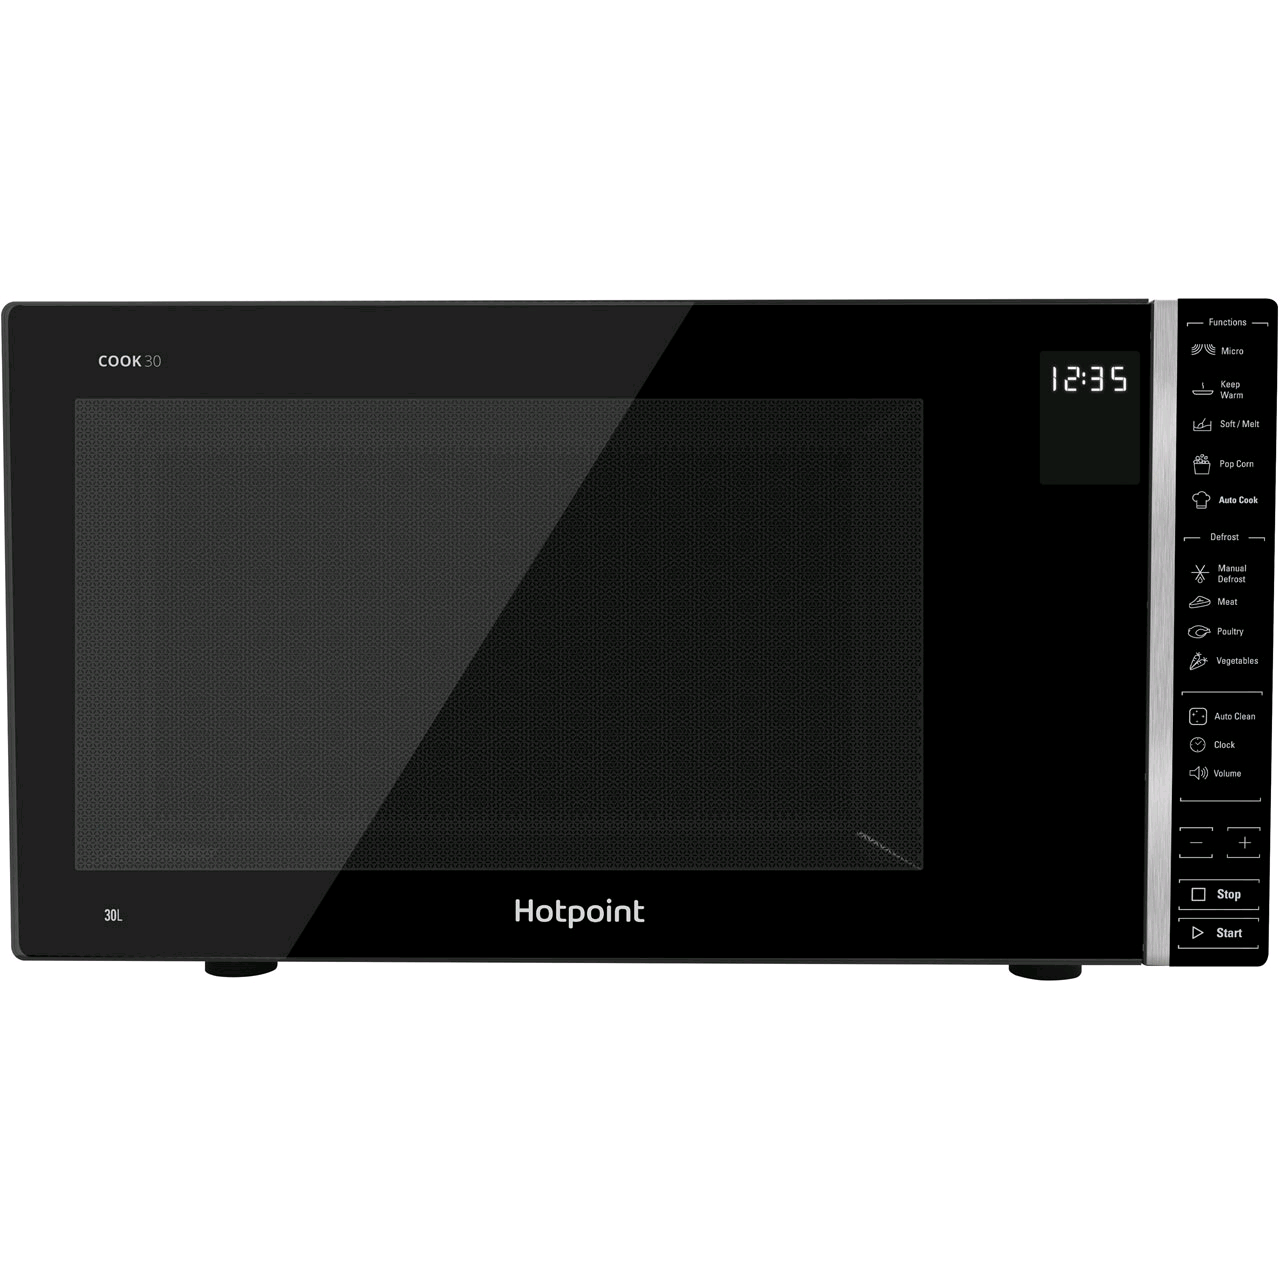 Hotpoint MWH301B Cook 30L Solo Microwave 900w Black